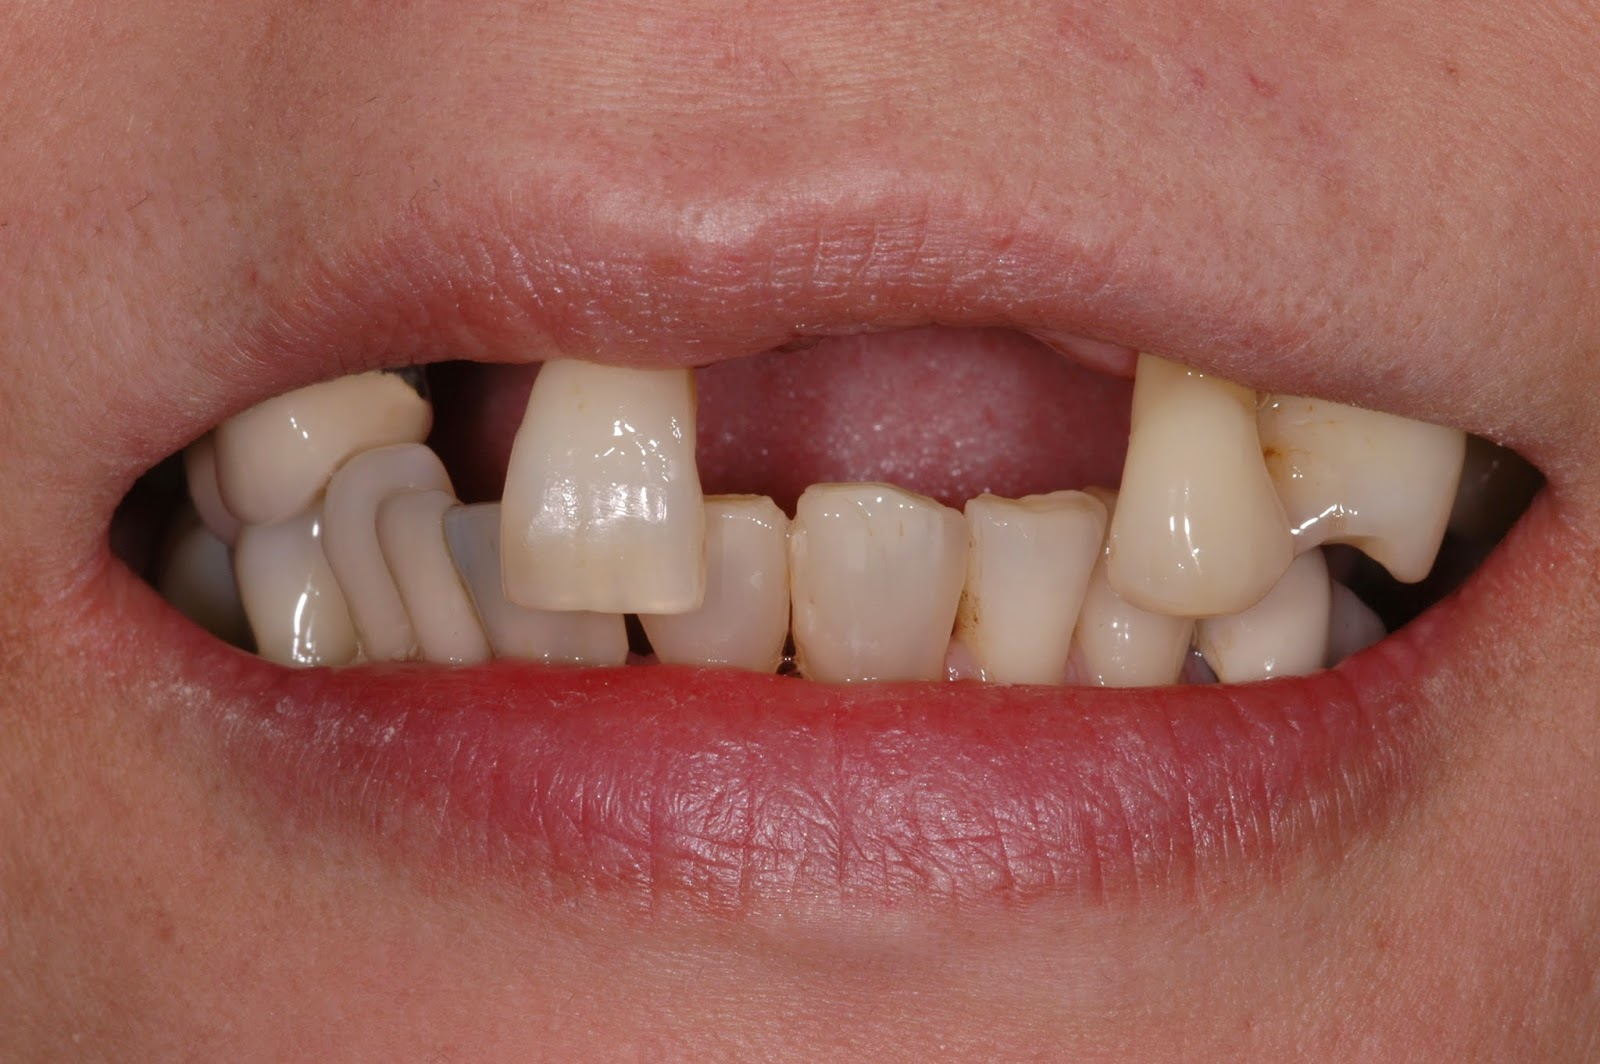 tooth loss treatment in bangalore